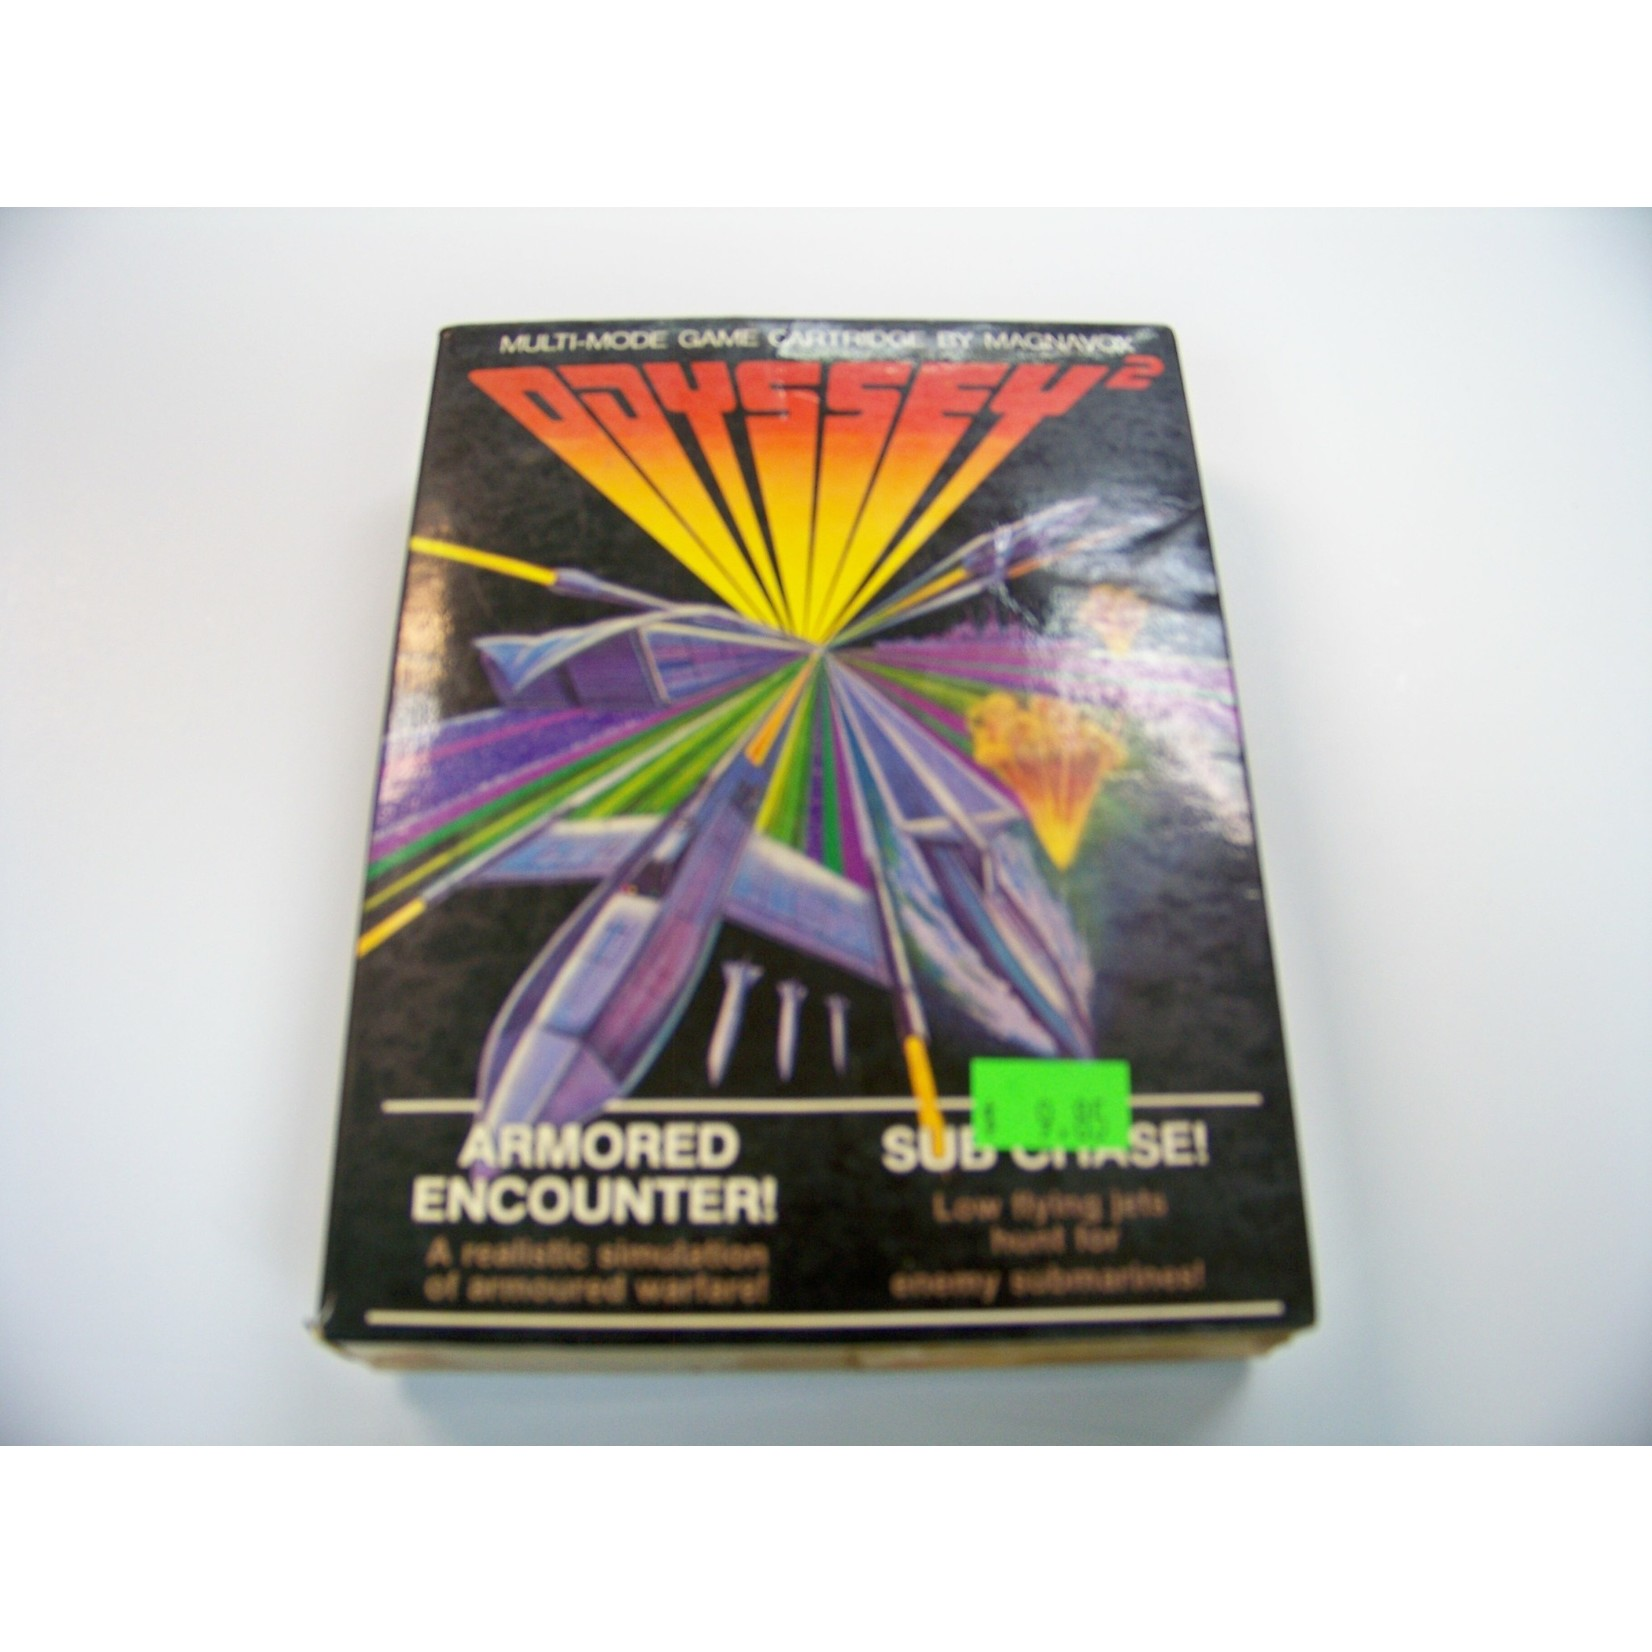 OD2U-SubChase!/Armored Encounter (BOXED)